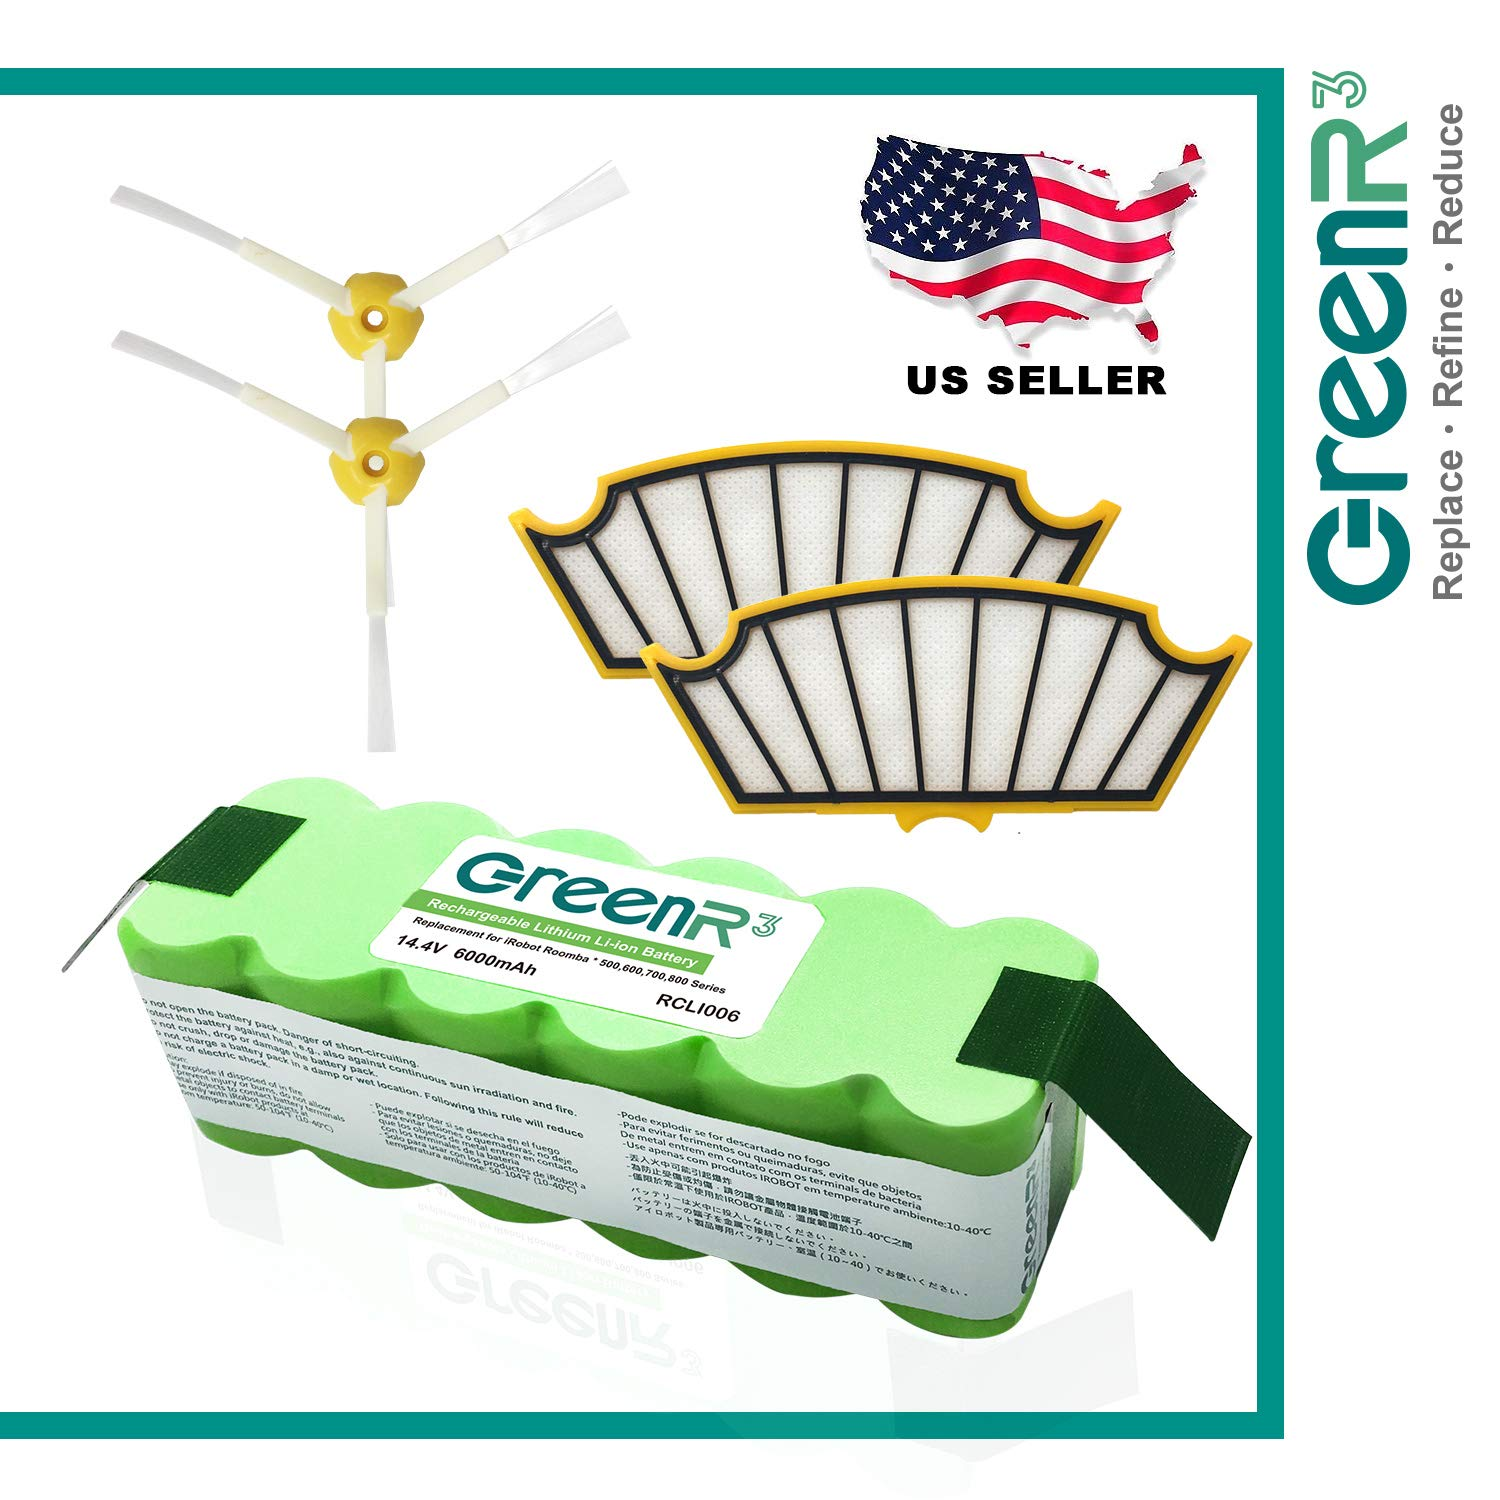 GreenR3 Lithium Battery Air Filters Brush iRobot 80601 81502 Fit ROOMBA 510 530 535 540 550 560 570 580 610 630 660 562 581 582 511 531 532 533 536 537 545 551 561 563 564 571 577 578 585 611 KIT